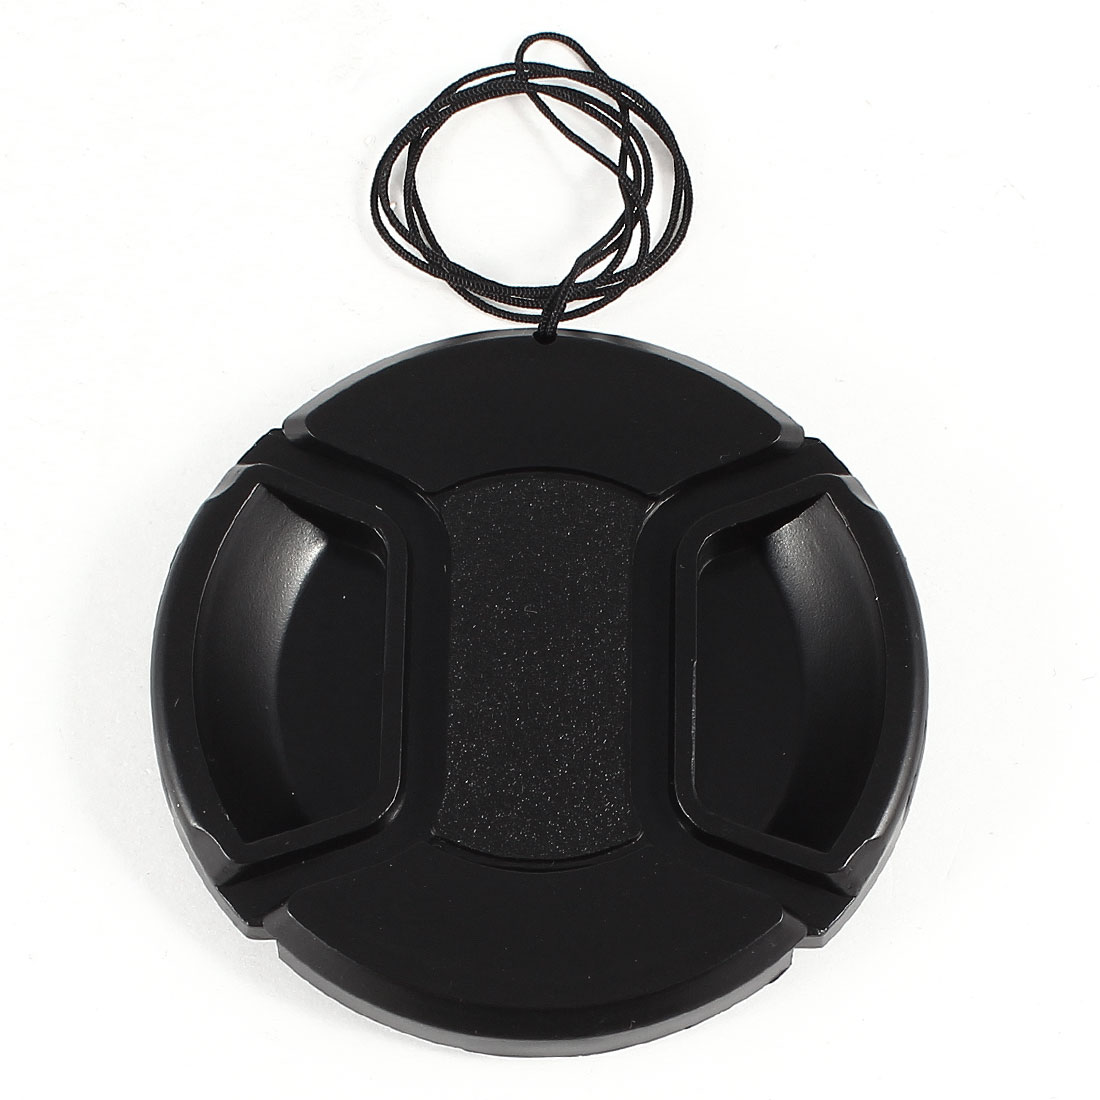 Unique Bargains DSLR Camera Front Lens Cap Cover Protector 62mm for Video Camcorders